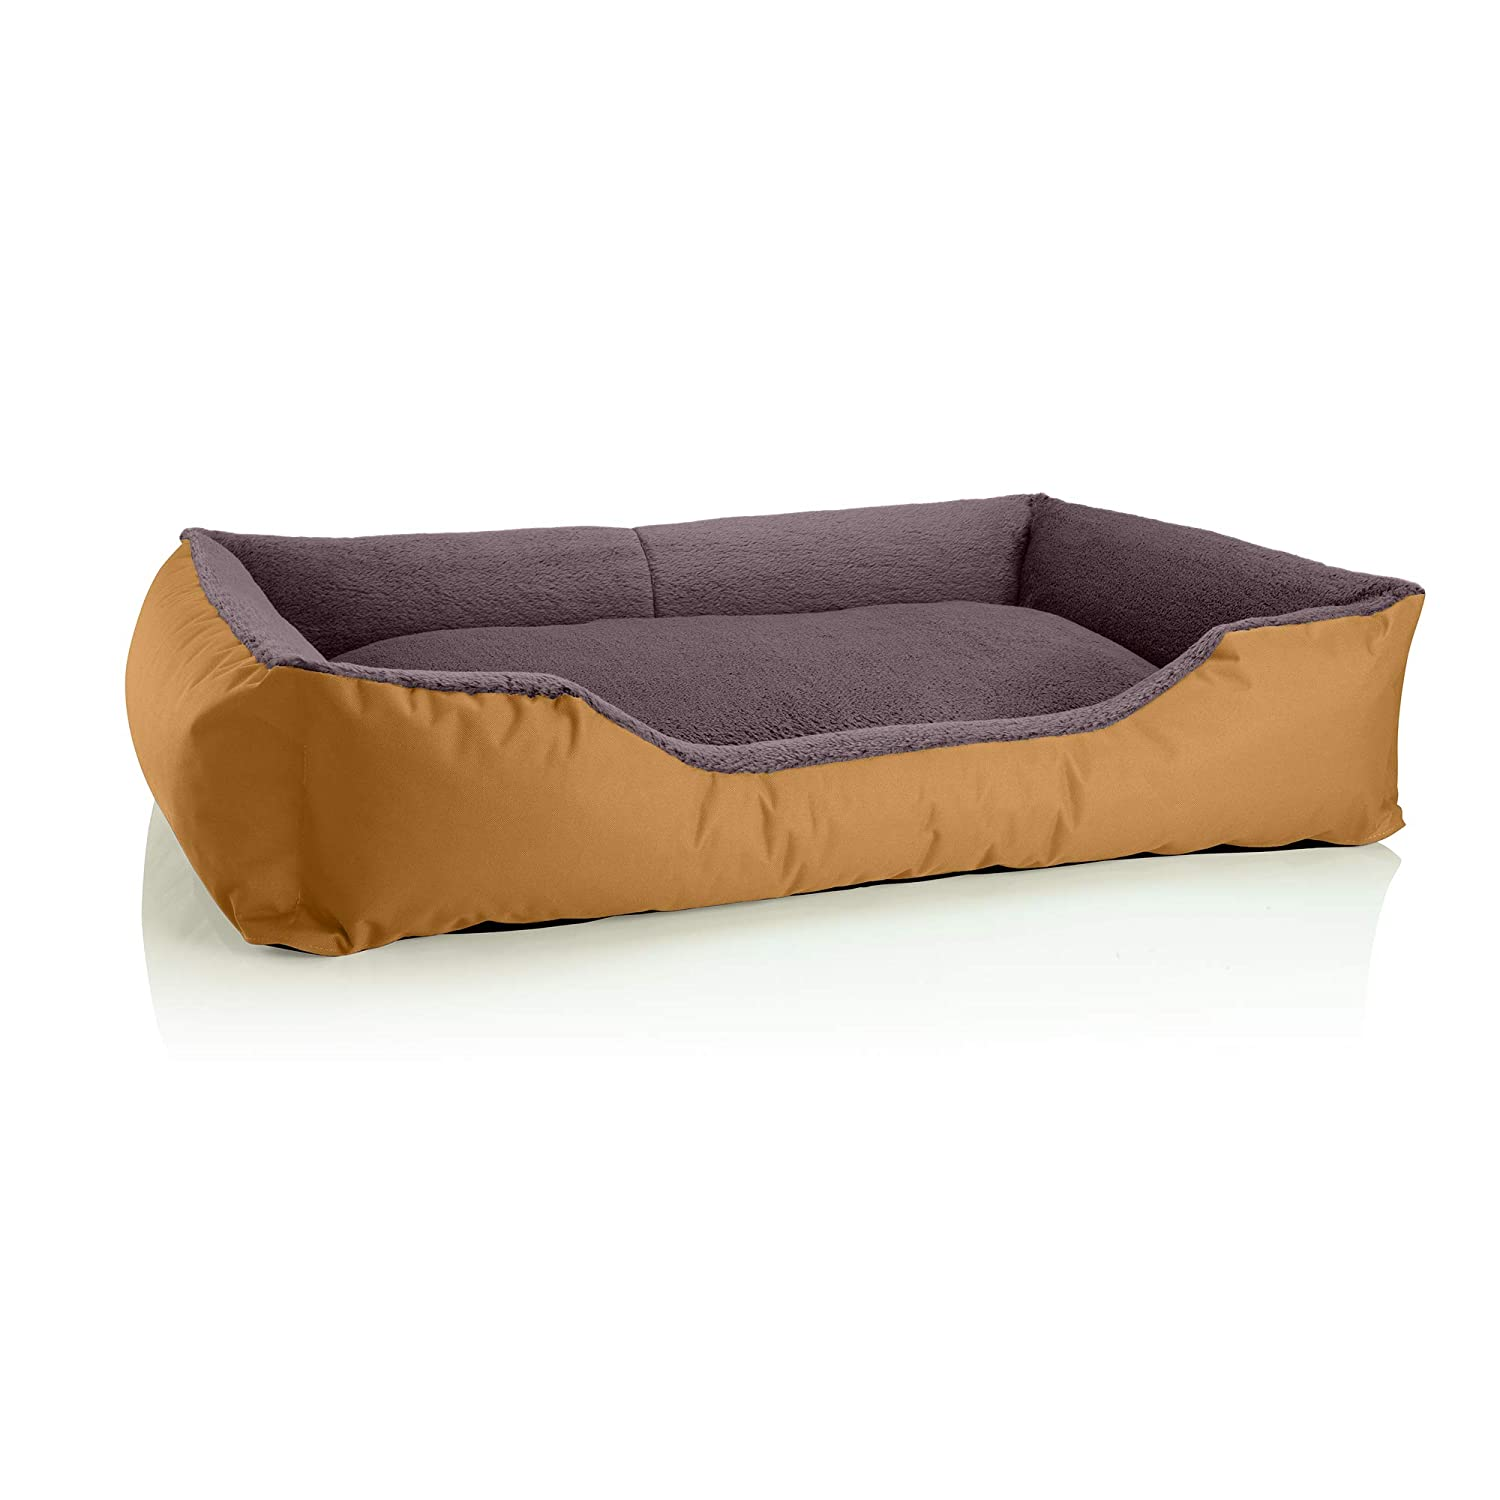 goldENBROWN (gold brown) XXXL (ca. 150x110cm)BedDog dog cat sofa TEDDY S to XXXL, 14 colours to choose, made from Cordura & Microfiber Velor, washable dog bed, dog cushion, indoor & outdoor use, size XXXL, grey grey